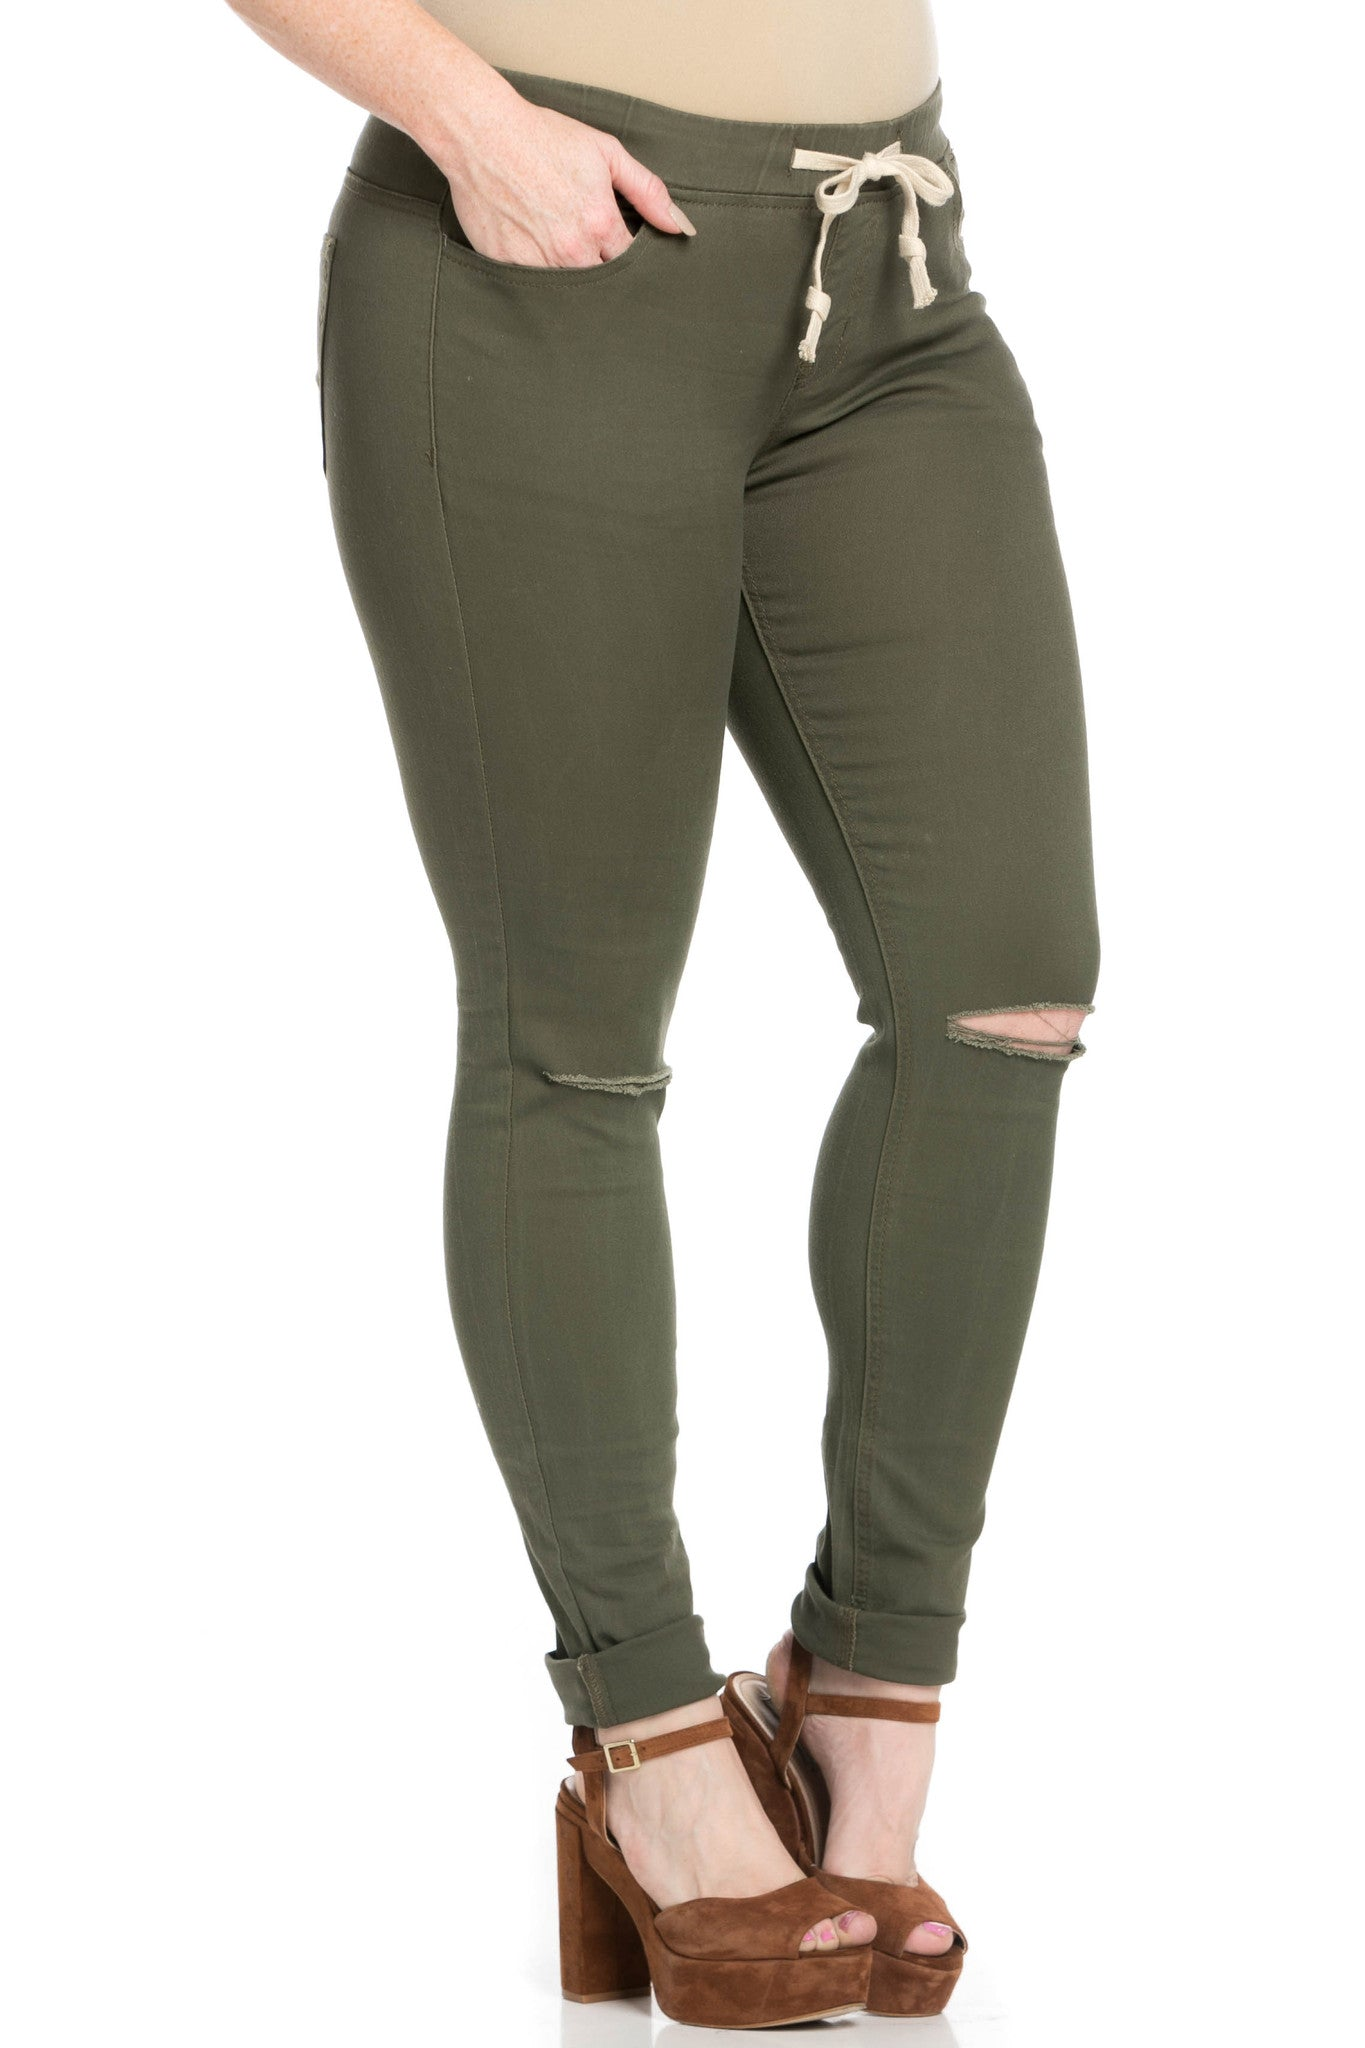 Destroyed Olive Skinny Jogger Jeans - Pants - My Yuccie - 16